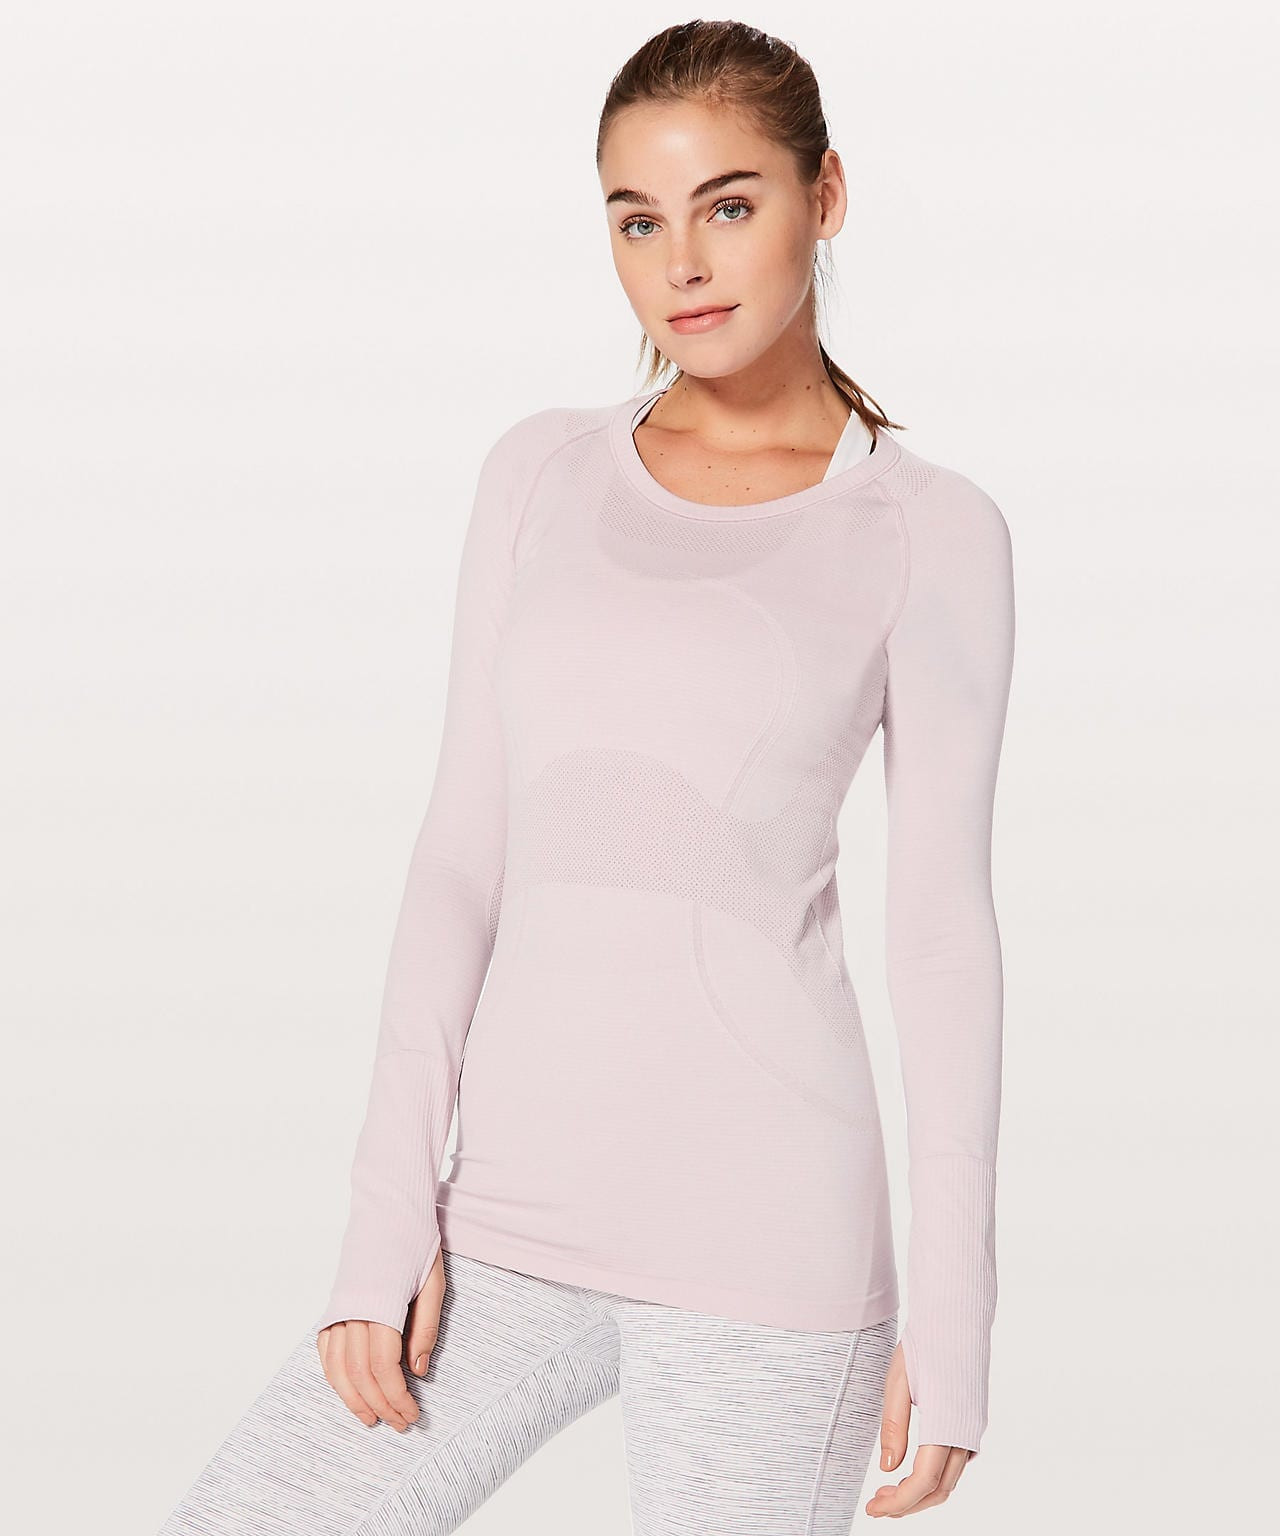 Swiftly Tech LS Crew Porcelain Pink